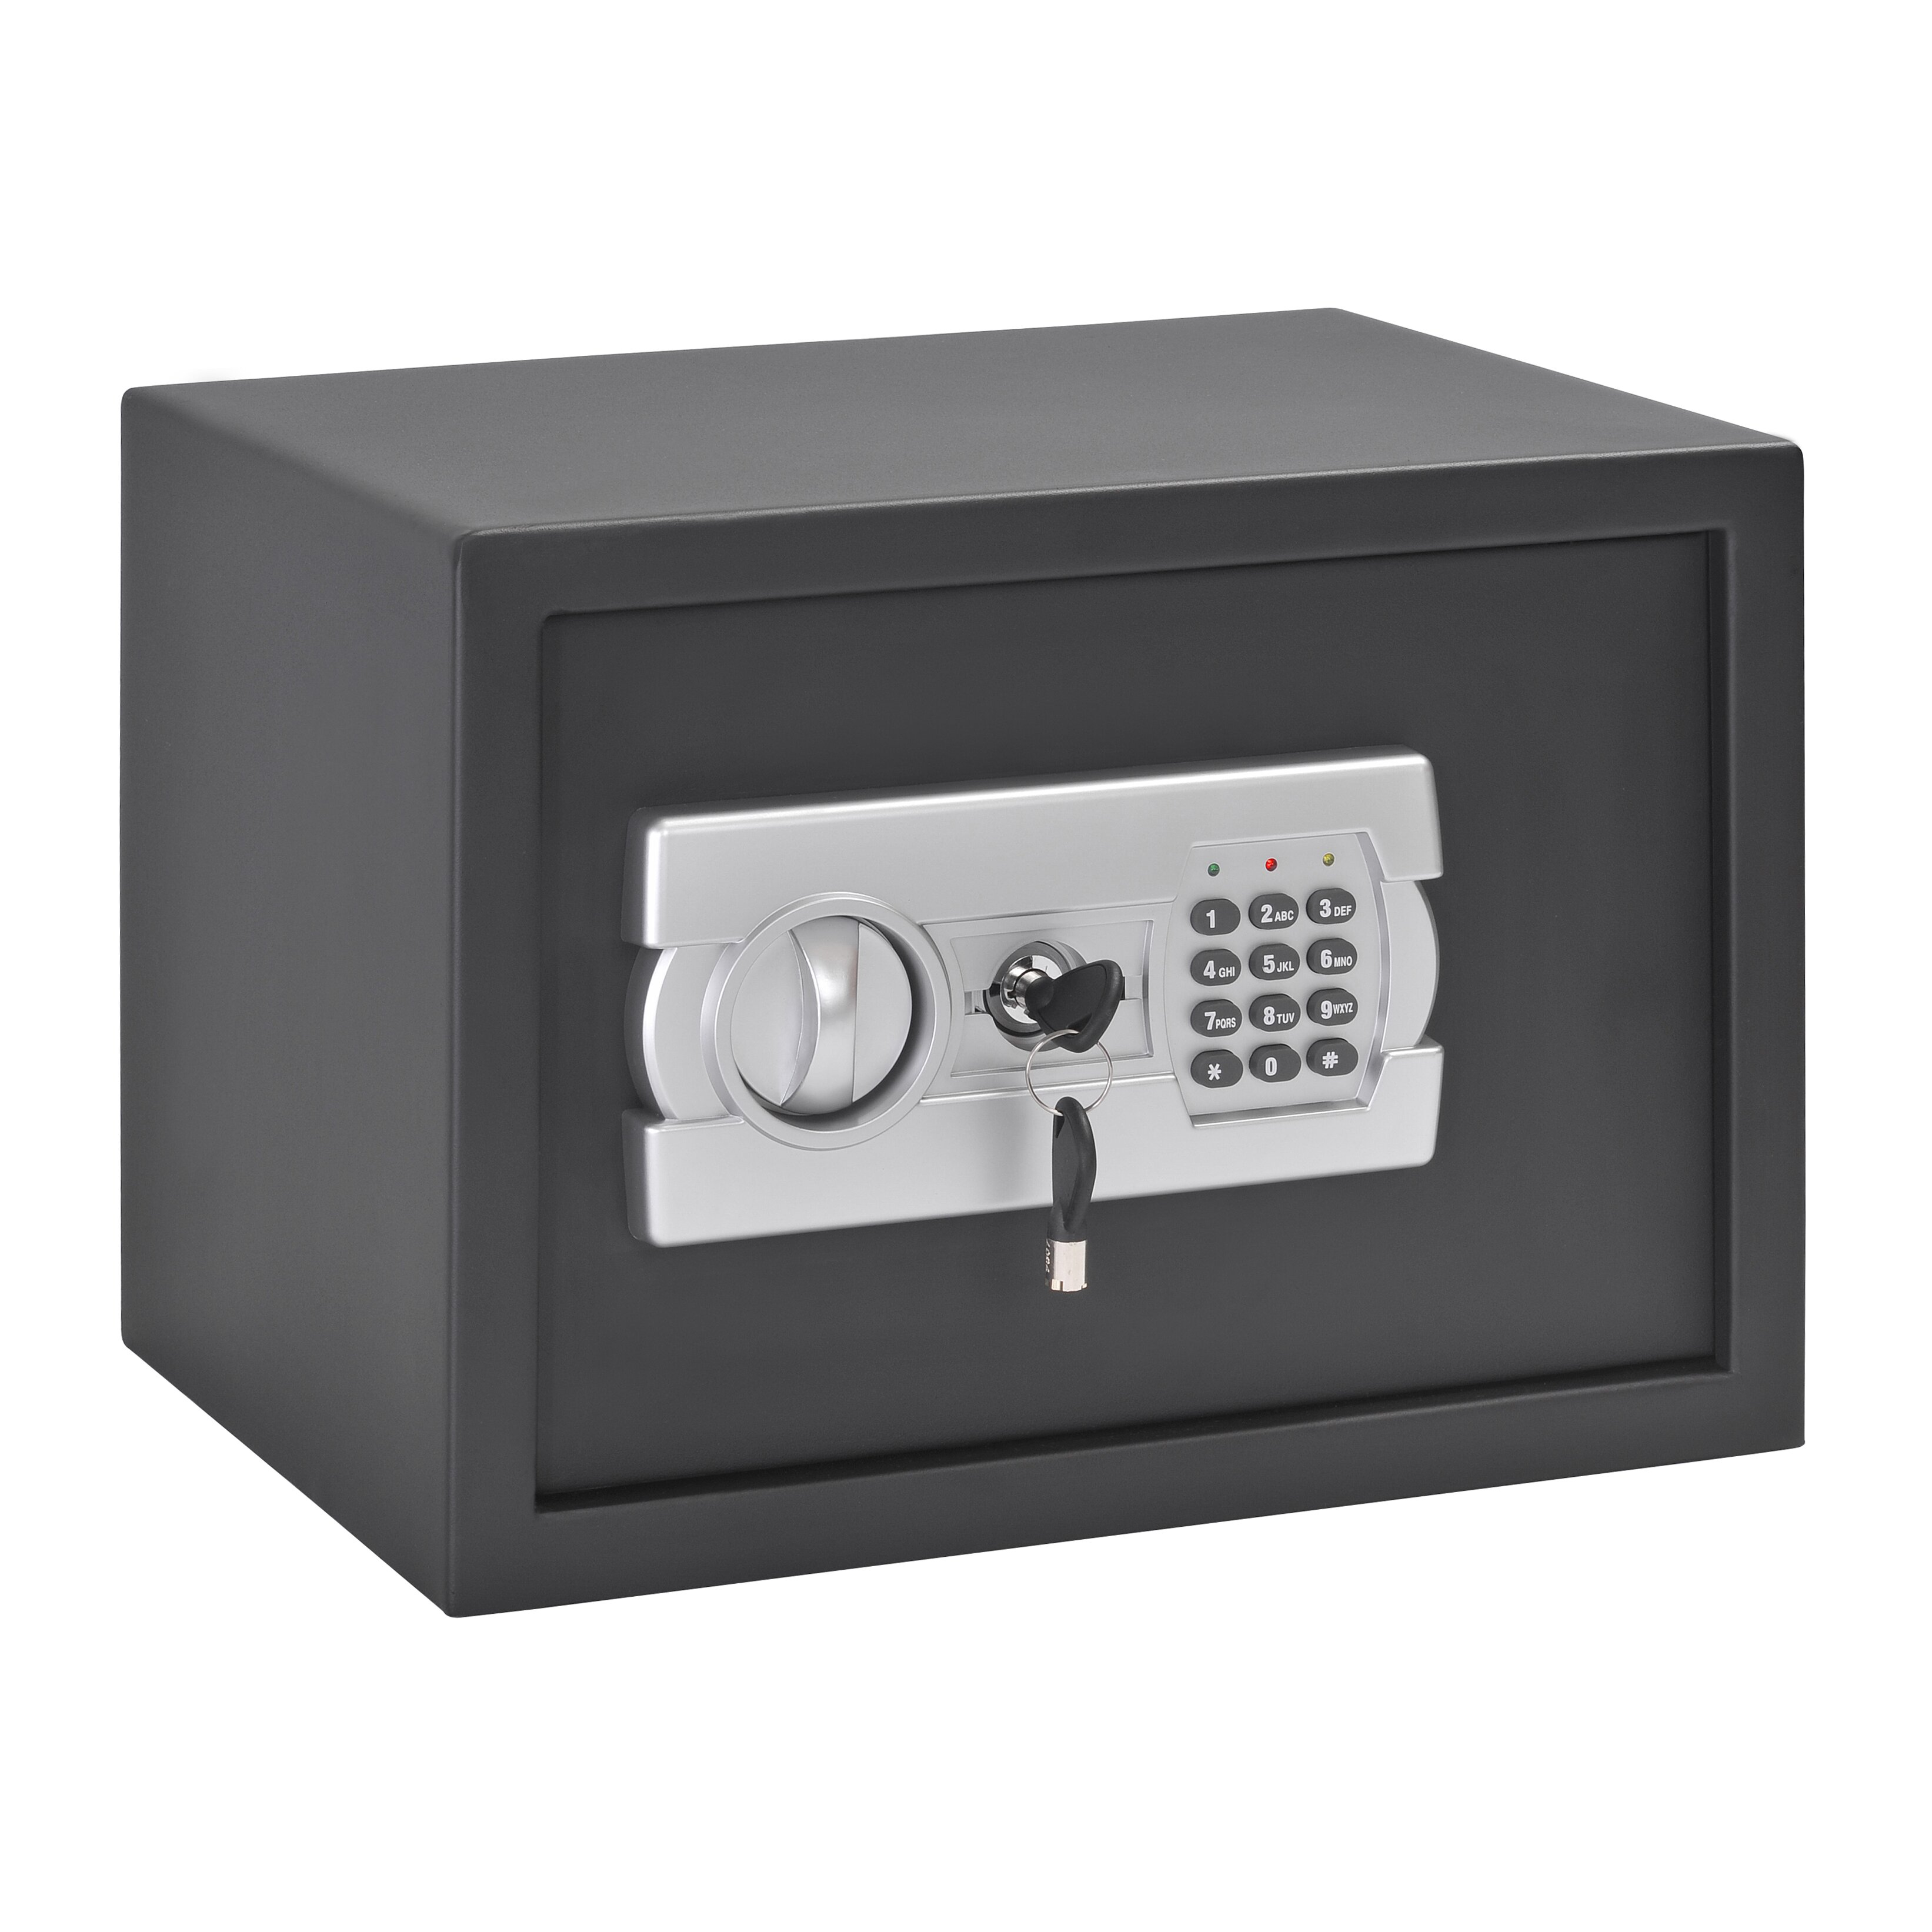 Buddy products heavy duty electronic lock commercial security safe